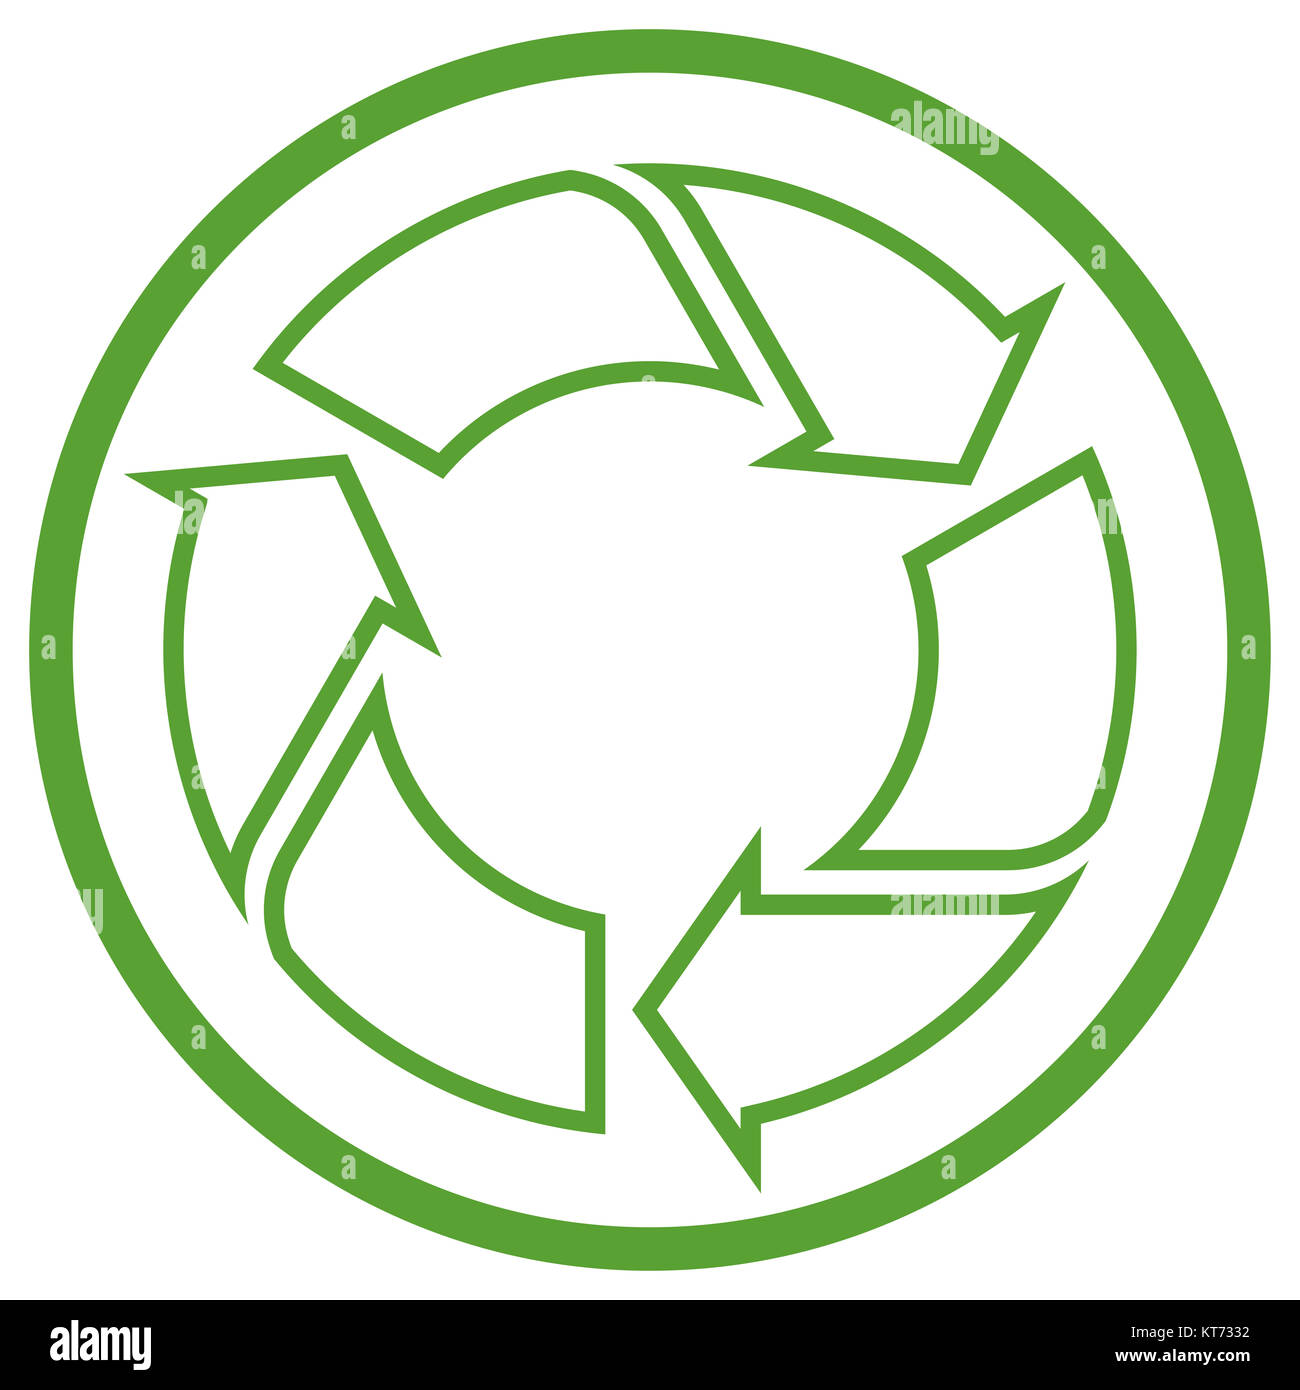 green recycling sign in circle isolated on white background Stock Photo